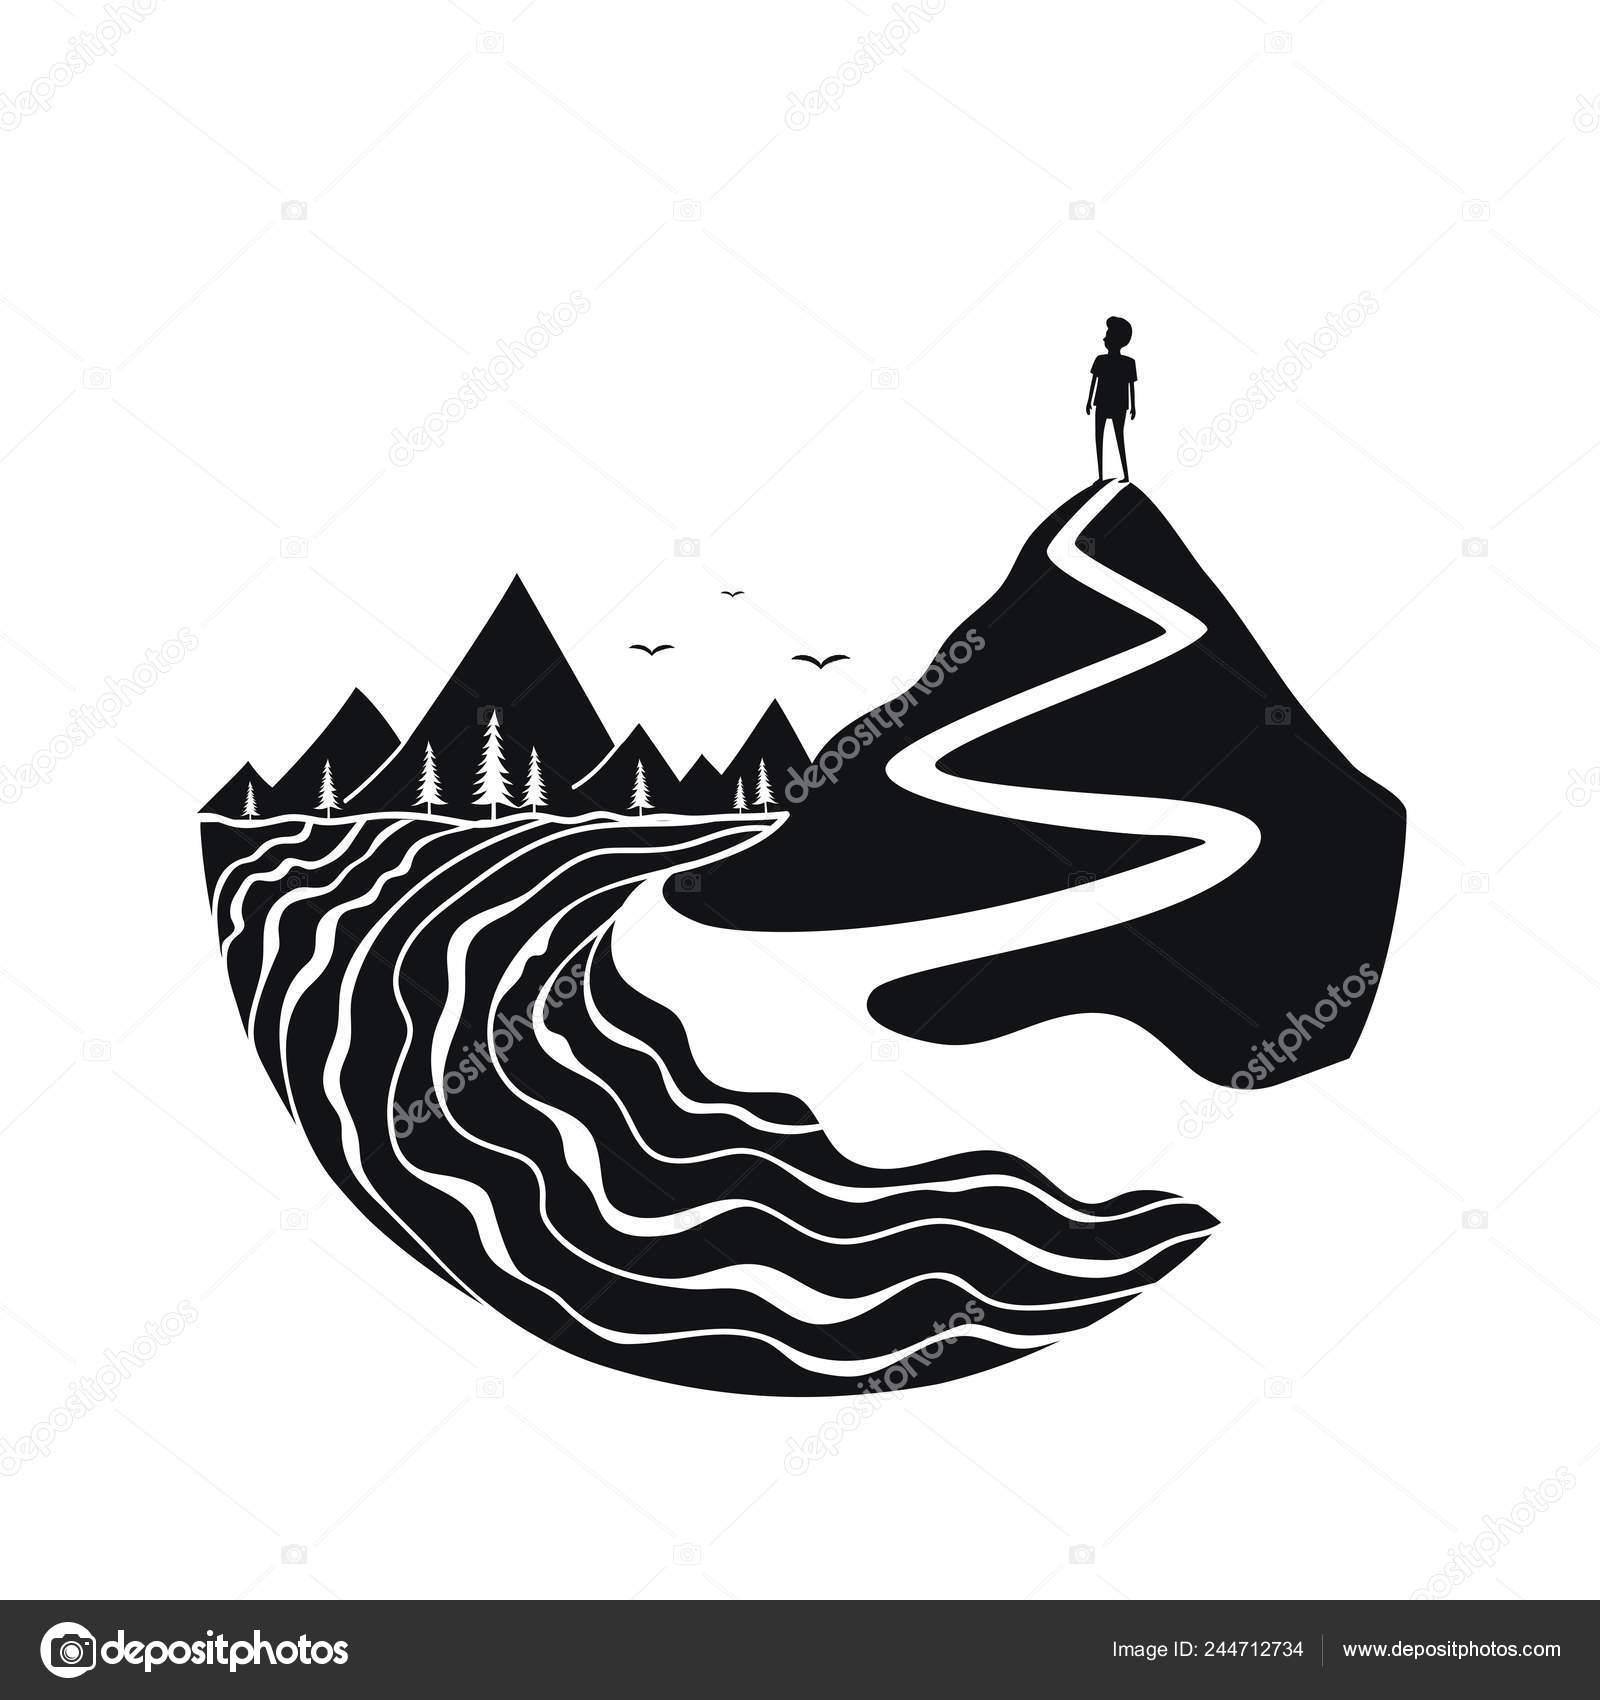 black white print design river birds mountains trail pine forest stock vector c julymilks 244712734 black white print design river birds mountains trail pine forest stock vector c julymilks 244712734